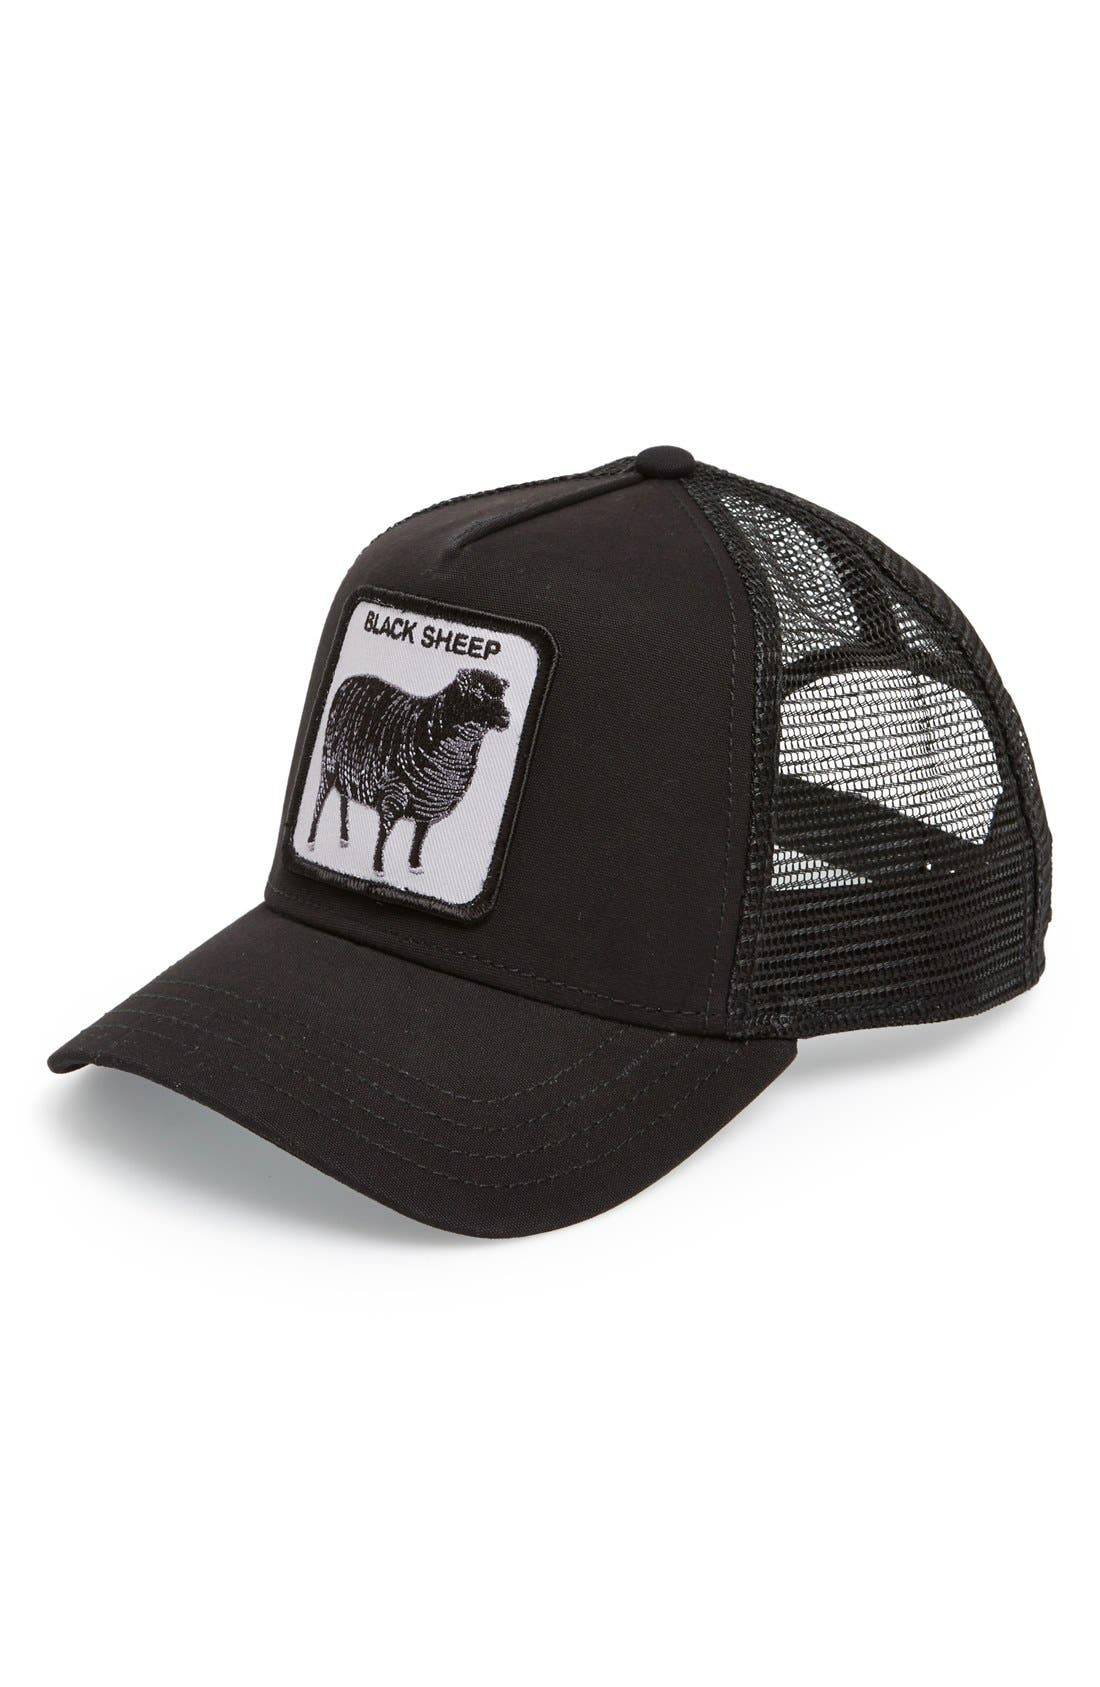 GOORIN BROTHERS Animal Farm - Naughty Lamb Trucker Cap